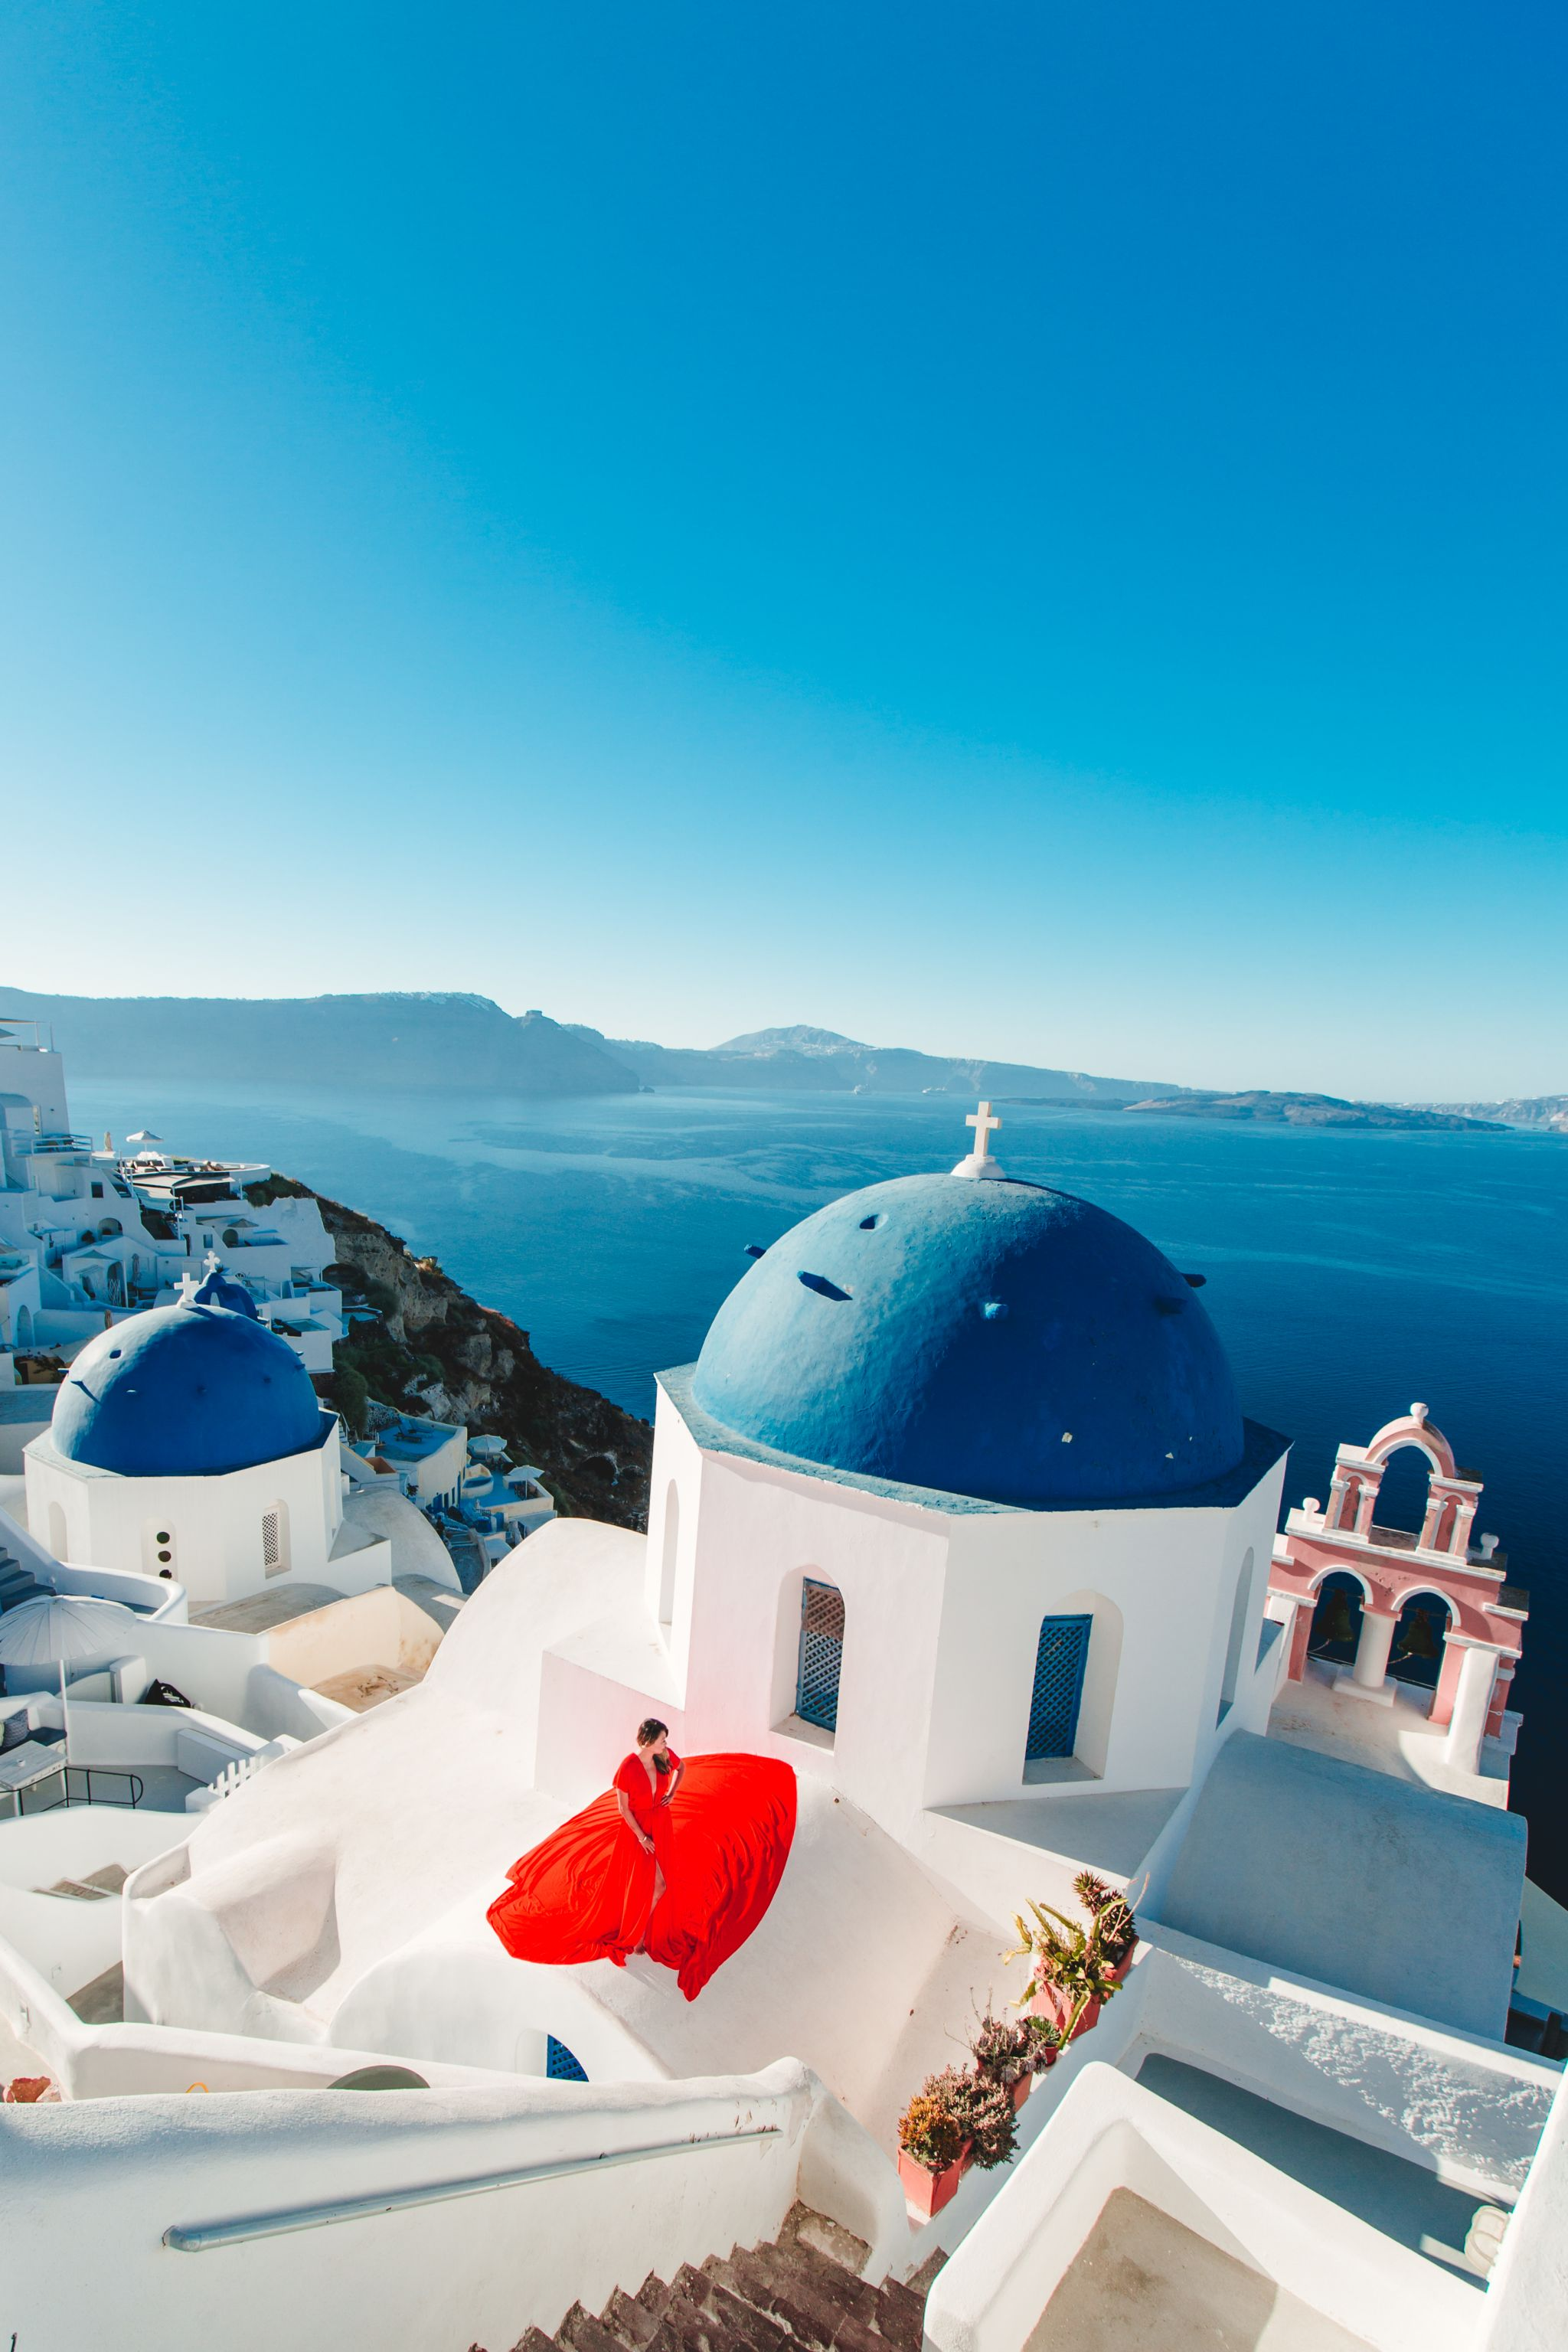 Blue domes santorini, Best places to take photos in Santorini, Best Santorini Photographer, Red Dress Greece Photos, Jennifer Worman, Epic Greece Photos, Where to go in Santorini, Chicago Travel Blogger, Greece Travel